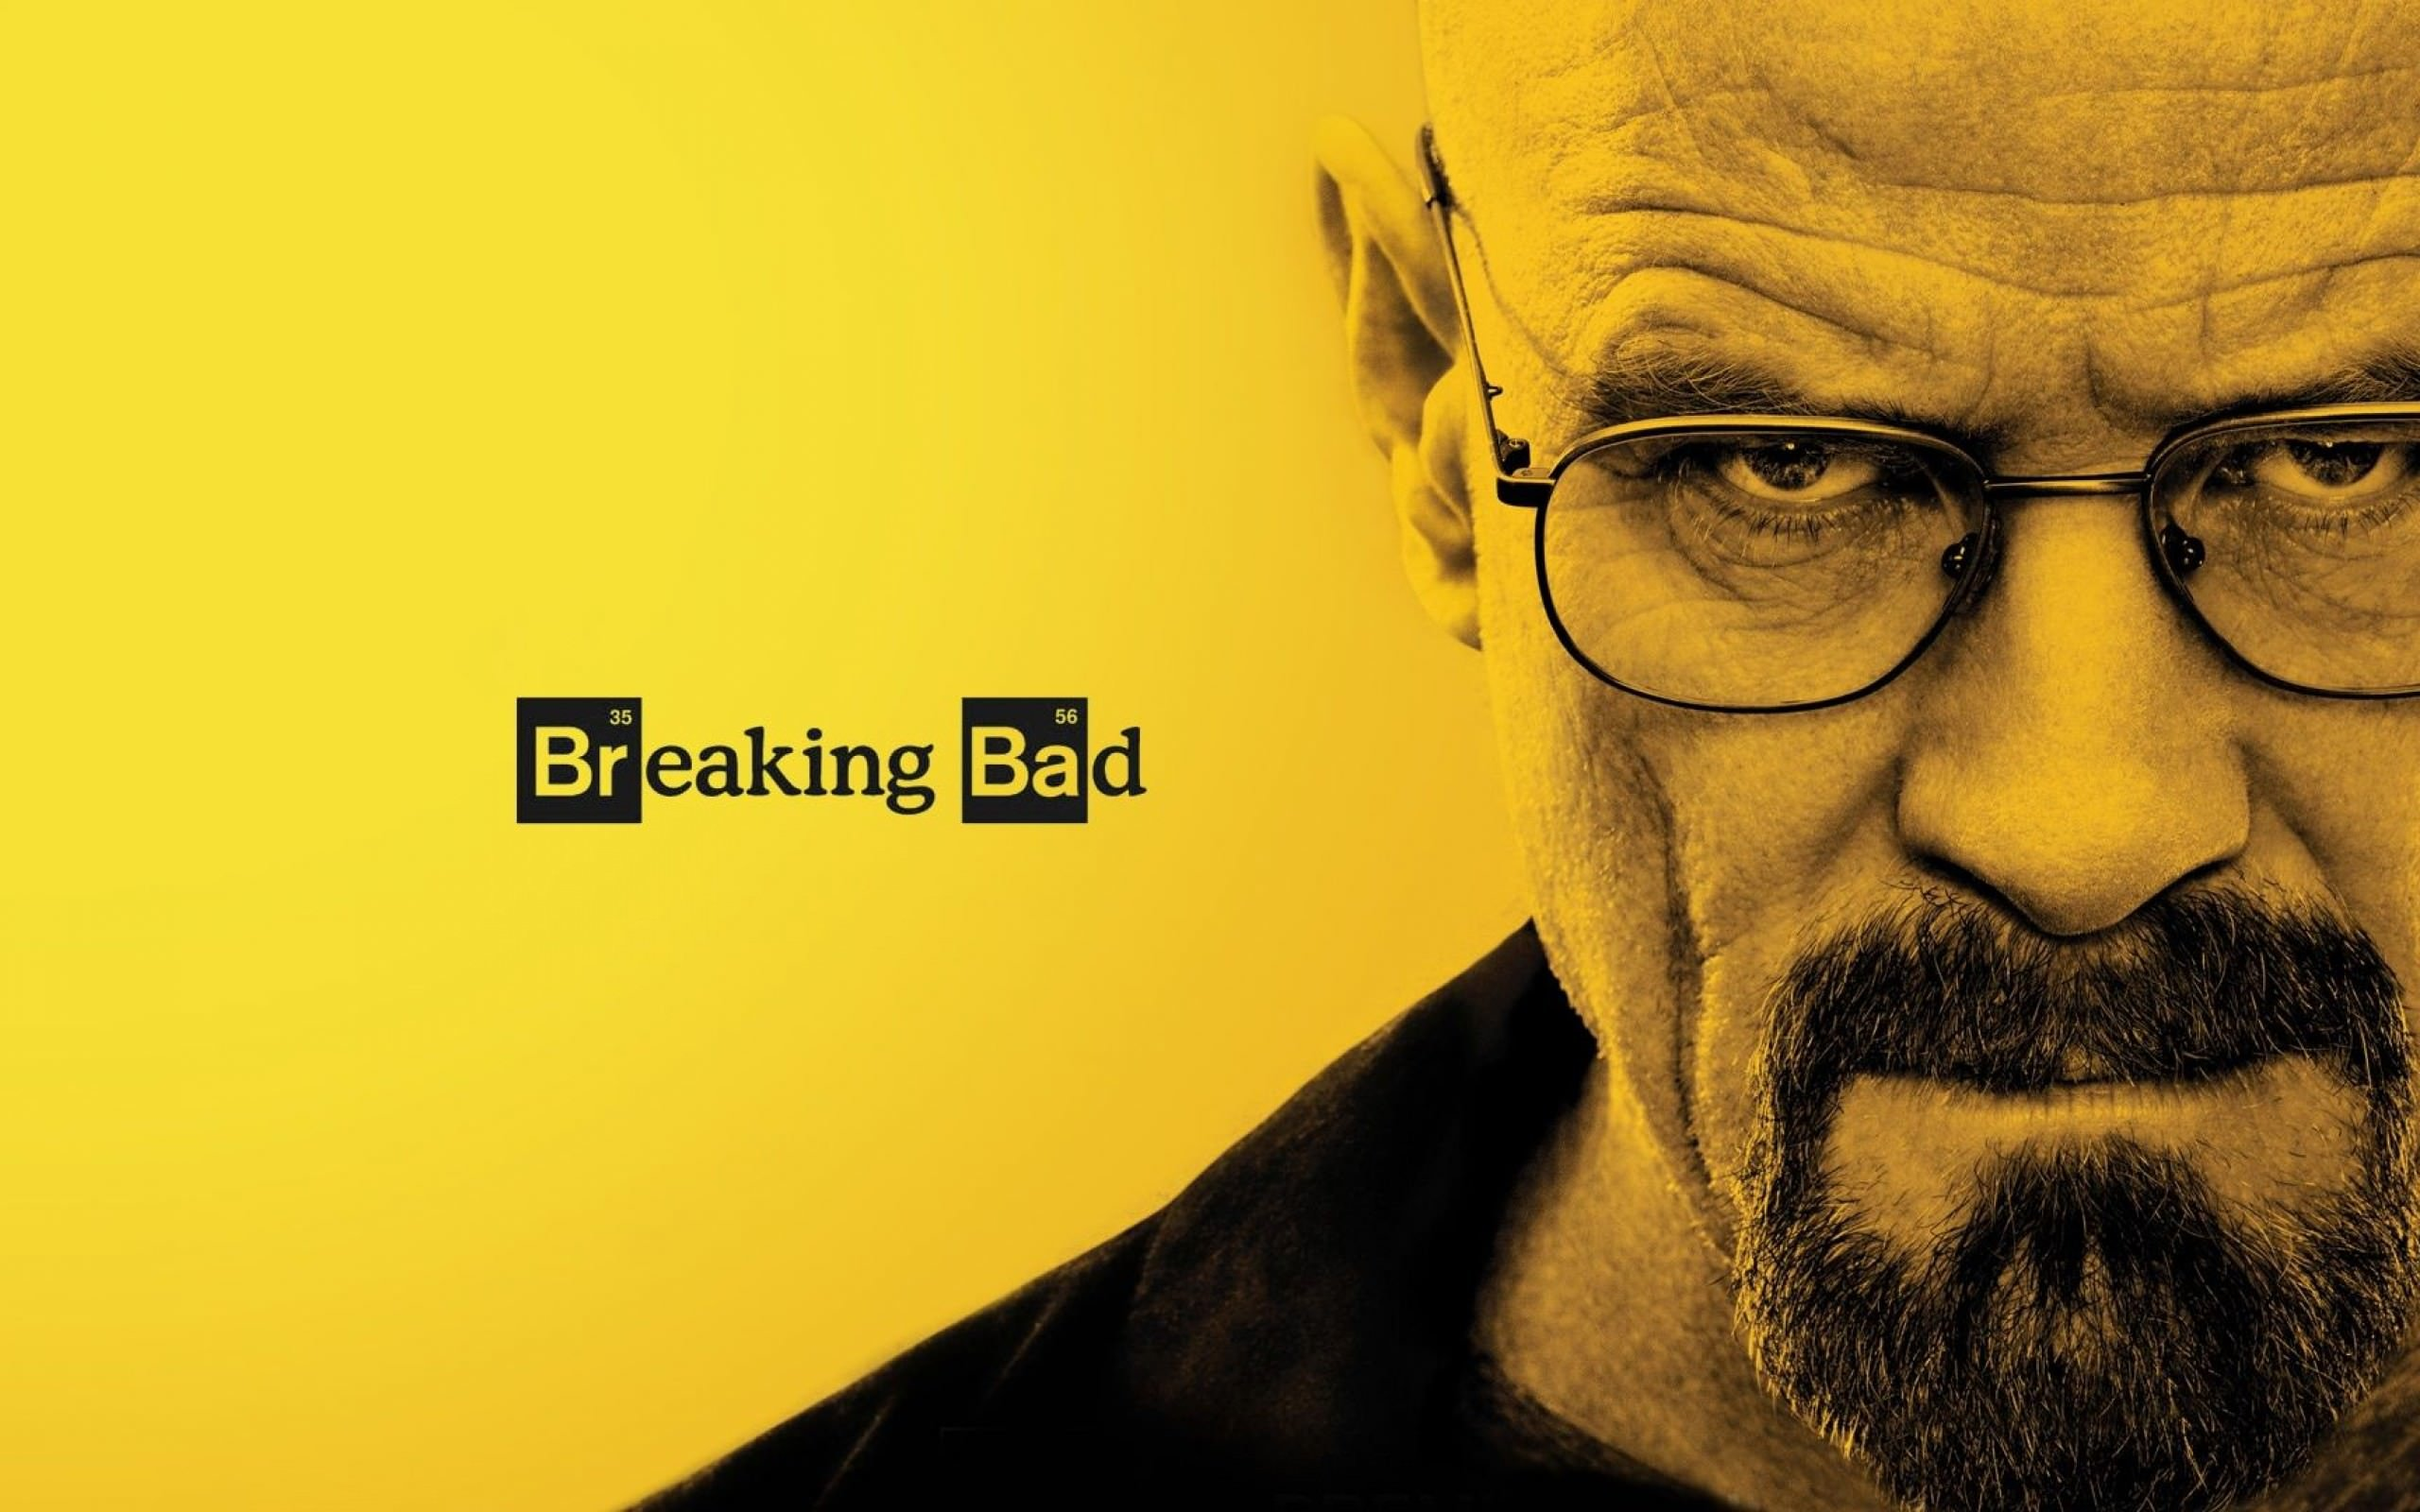 Breaking Bad - Walter White Wallpaper for Desktop 2560x1600